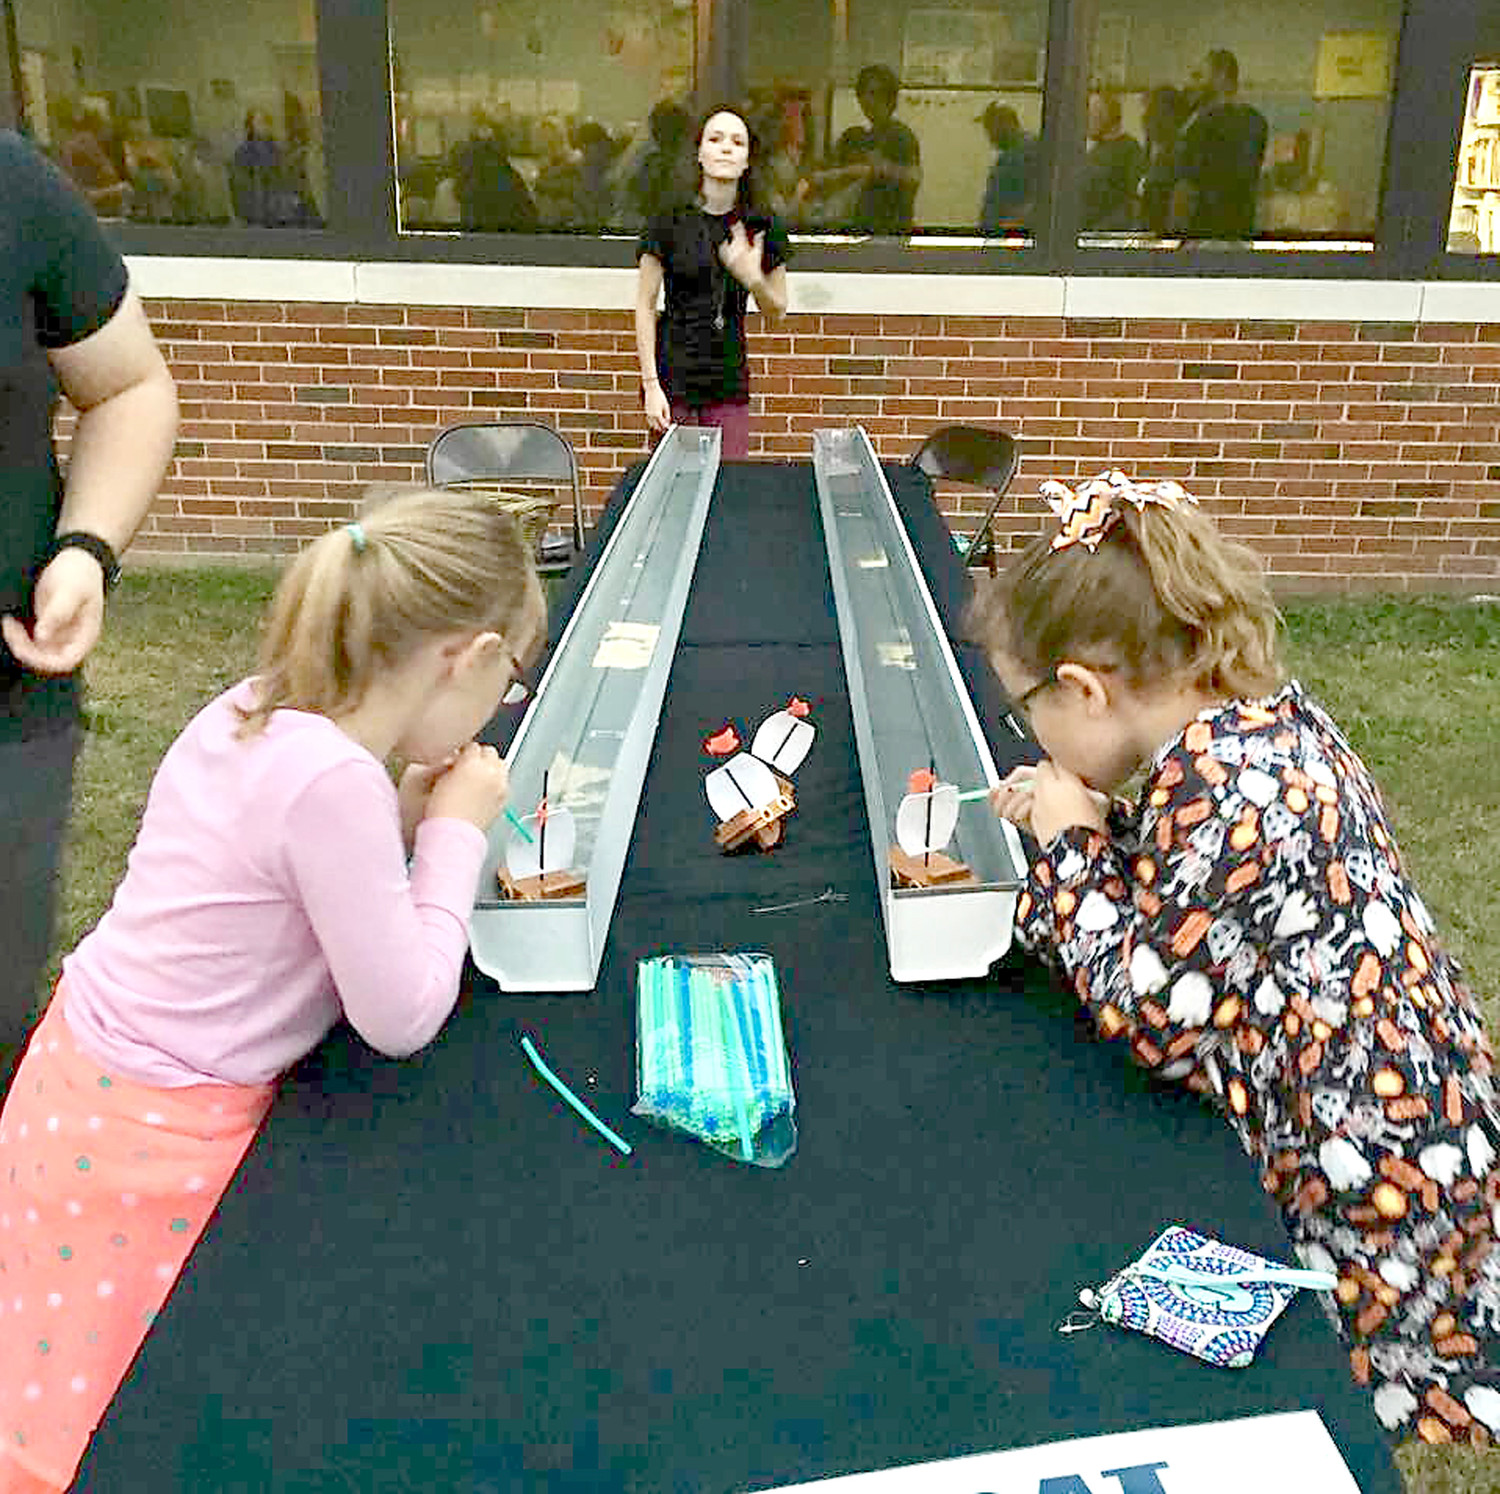 BLOWING their boats to the finish line, two Michigan Avenue Elementary third-graders compete in the boat races at the school's Fall Festival.